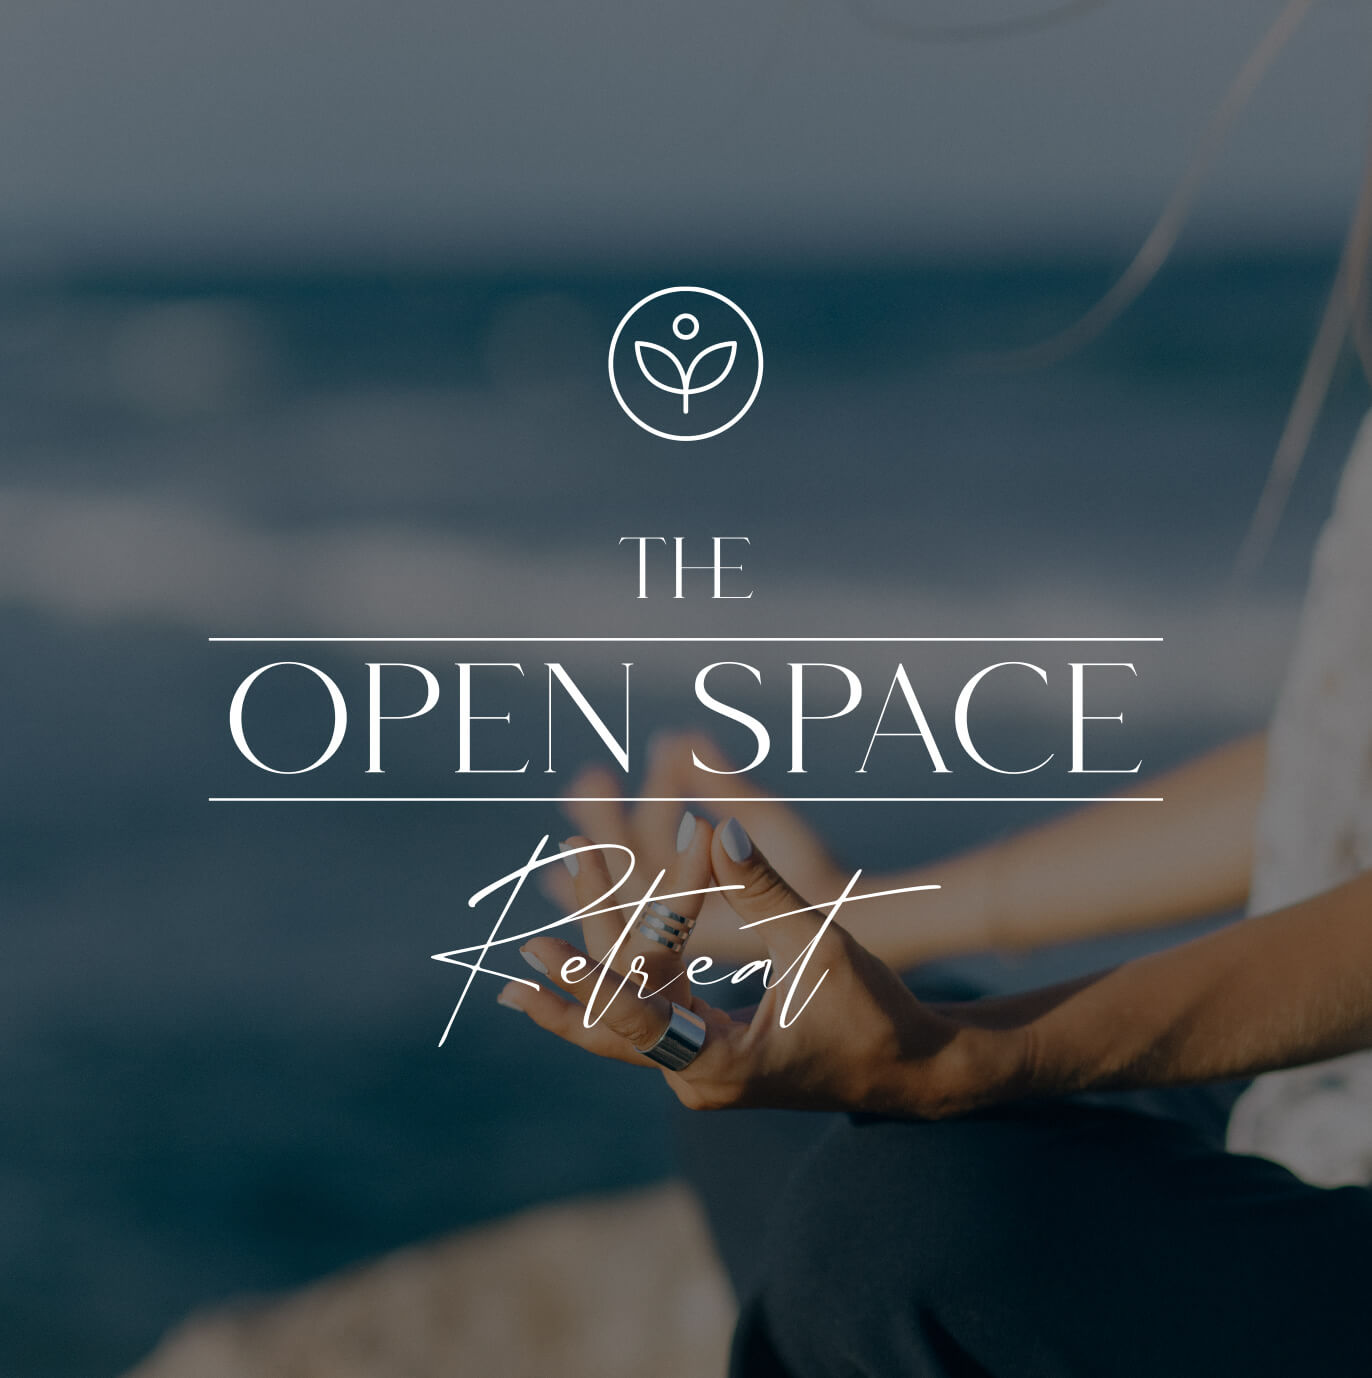 The Open Space Retreat